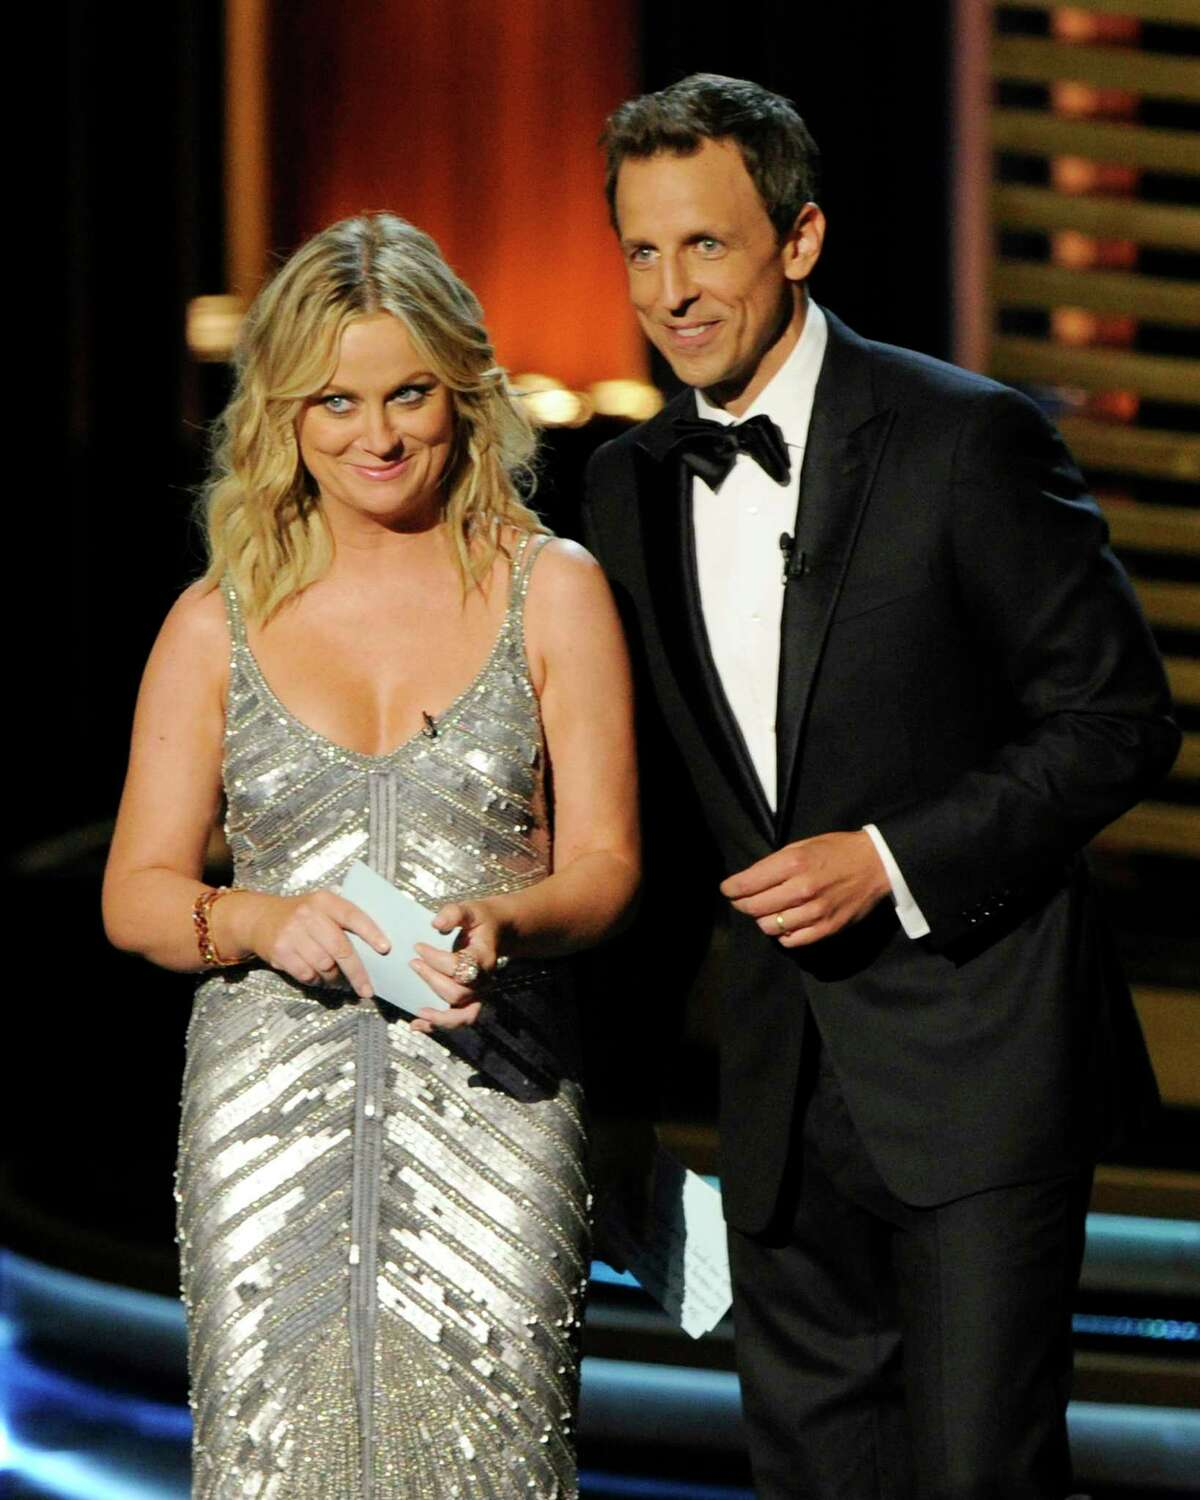 Amy Poehler, left, and Host Seth Meyers speak on stage at the 66th Annual Primetime Emmy Awards at the Nokia Theatre L.A. Live on Monday, Aug. 25, 2014, in Los Angeles.